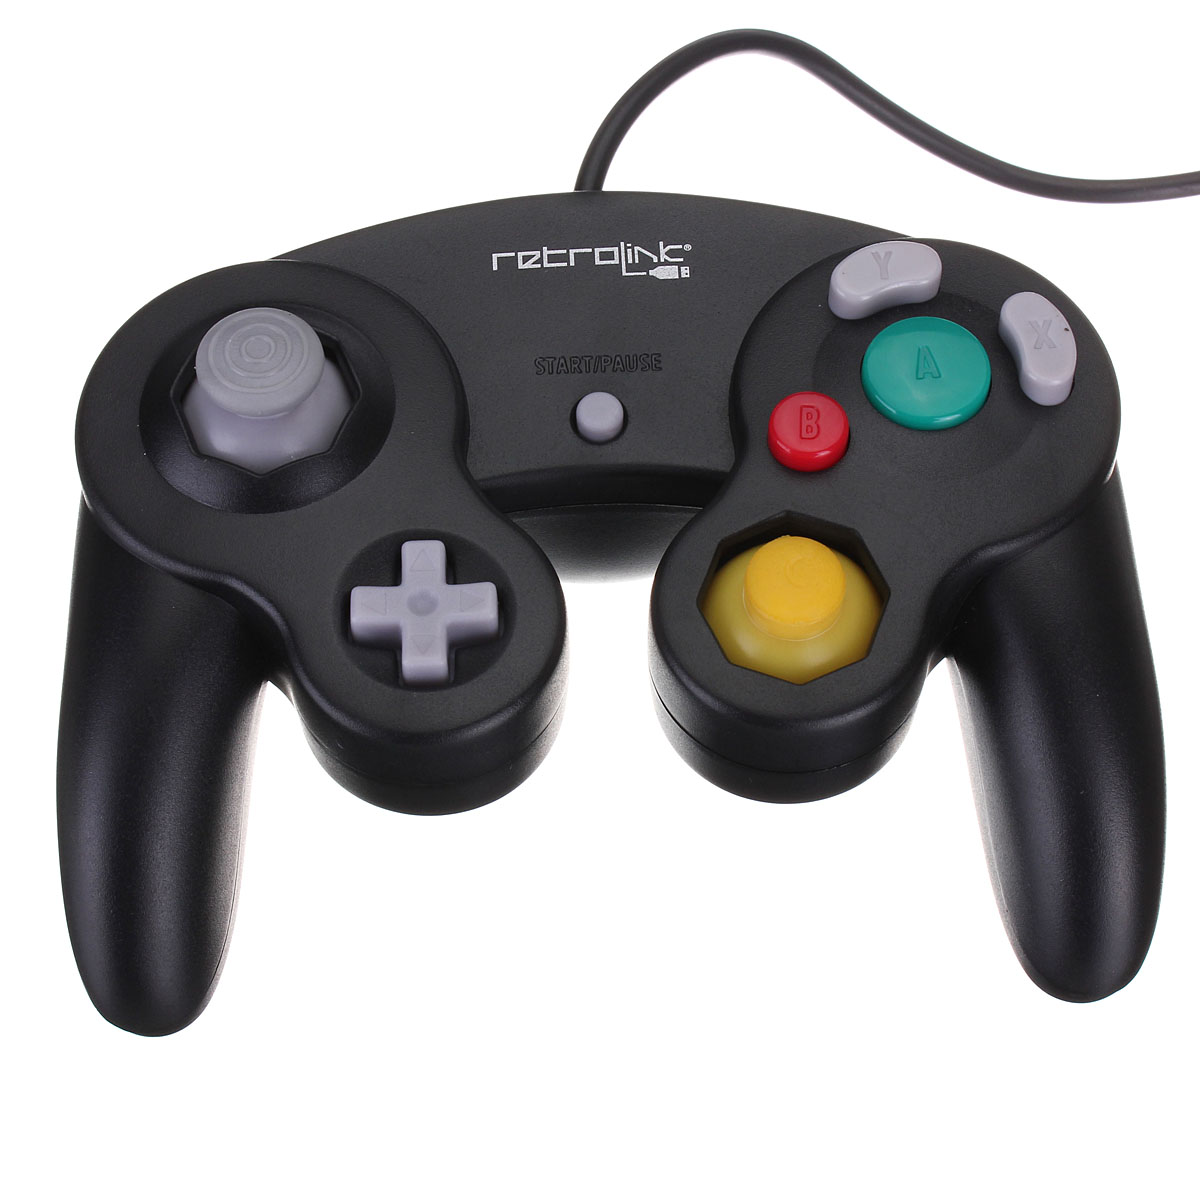 Hot New Black USB Wired Controller Joypad Joystick for Nintendo for Gamecube for NGC GC for PC for MAC Computer Pad(China (Mainland))